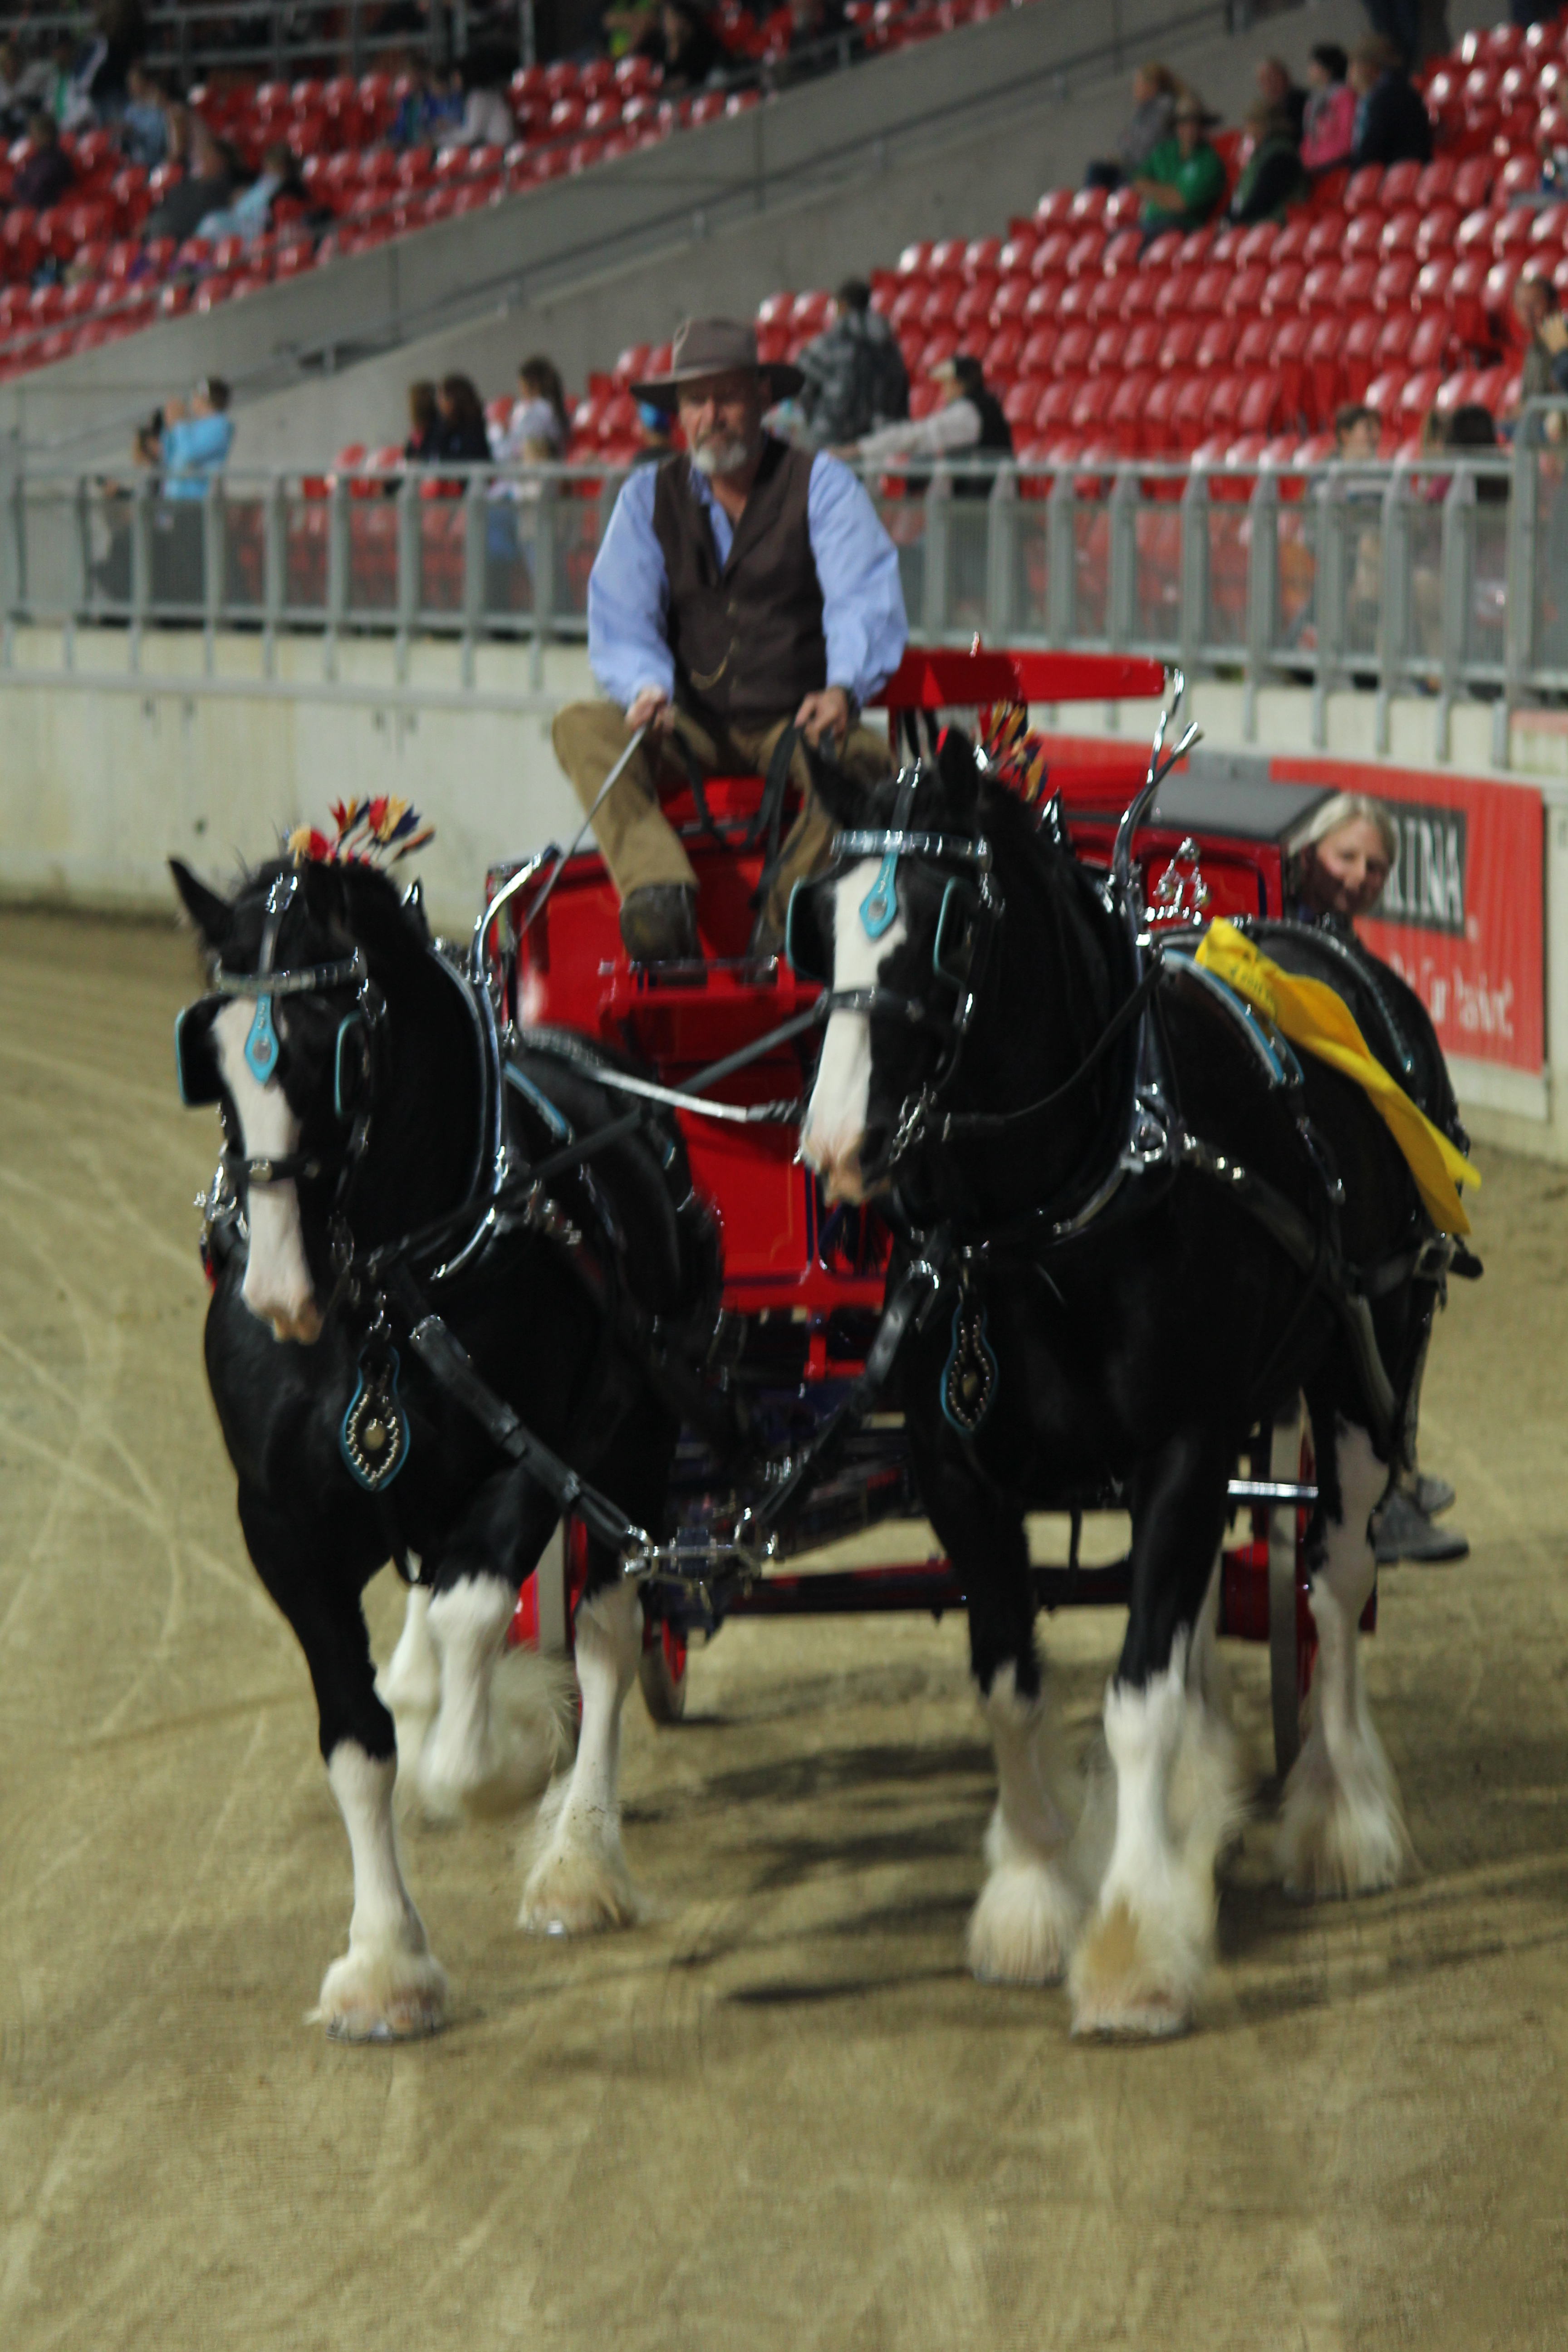 flash & Ent at the 2014 easter show